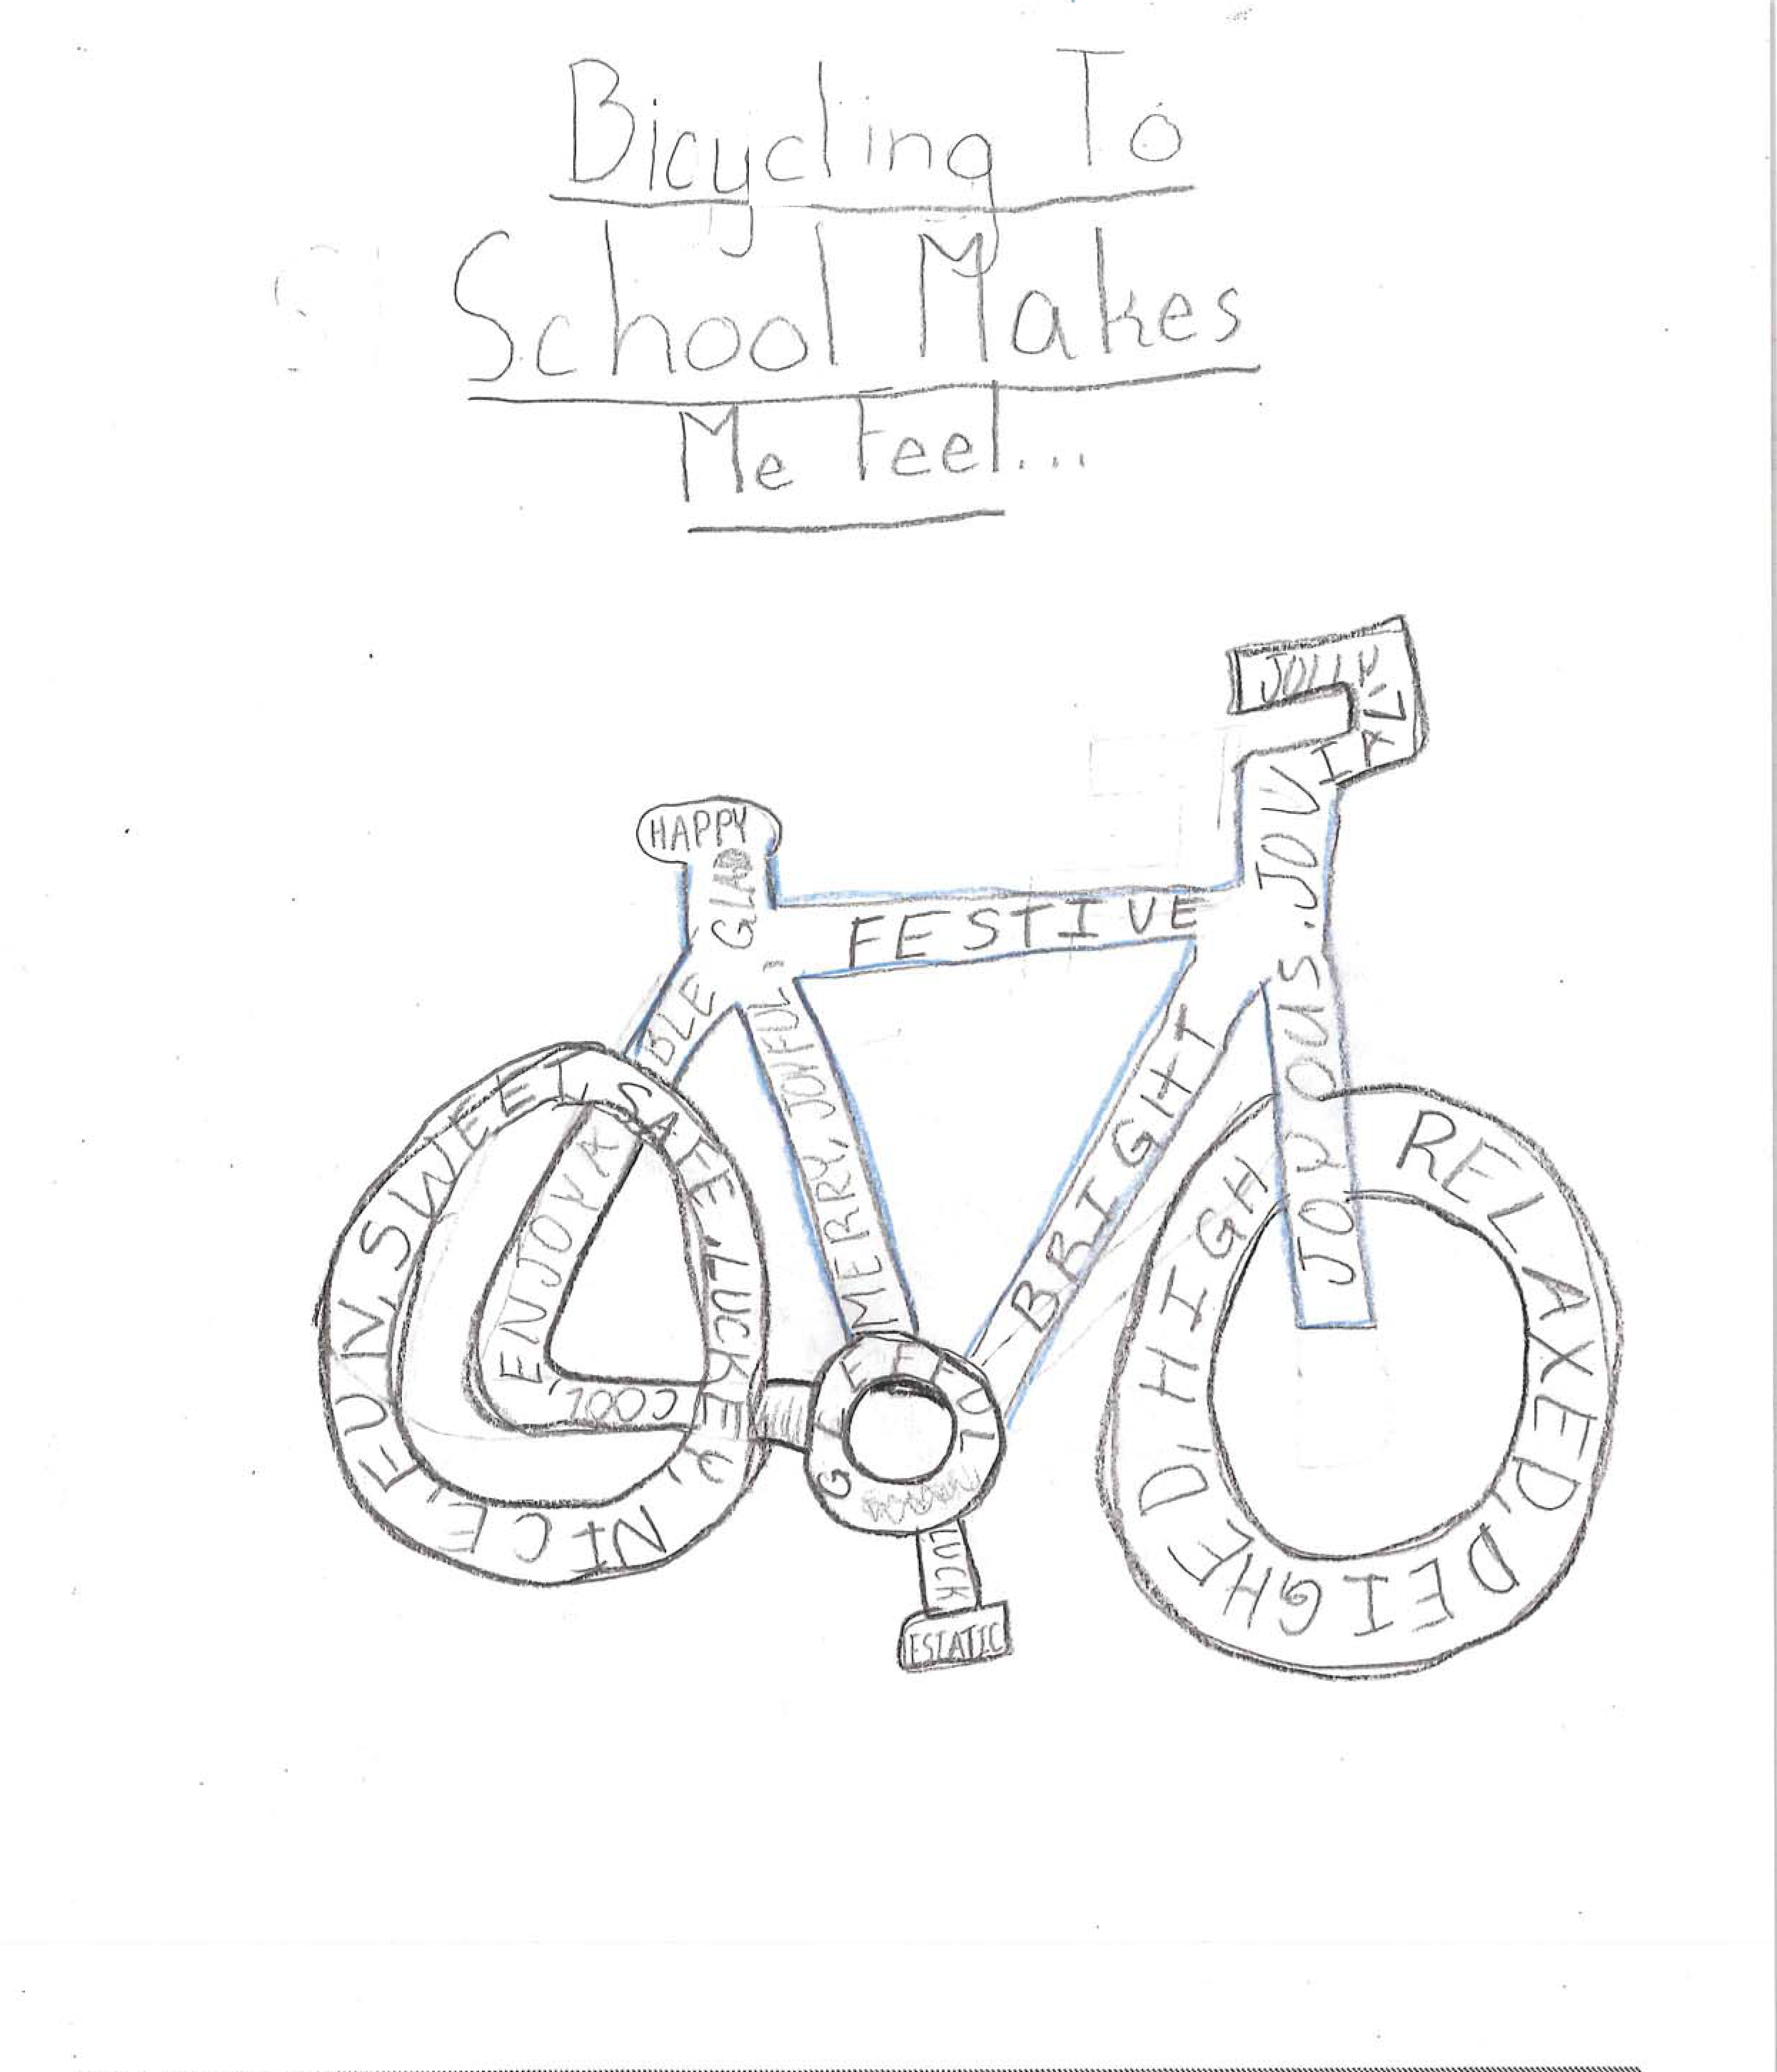 image of bicycle with words describing how it feels written on it